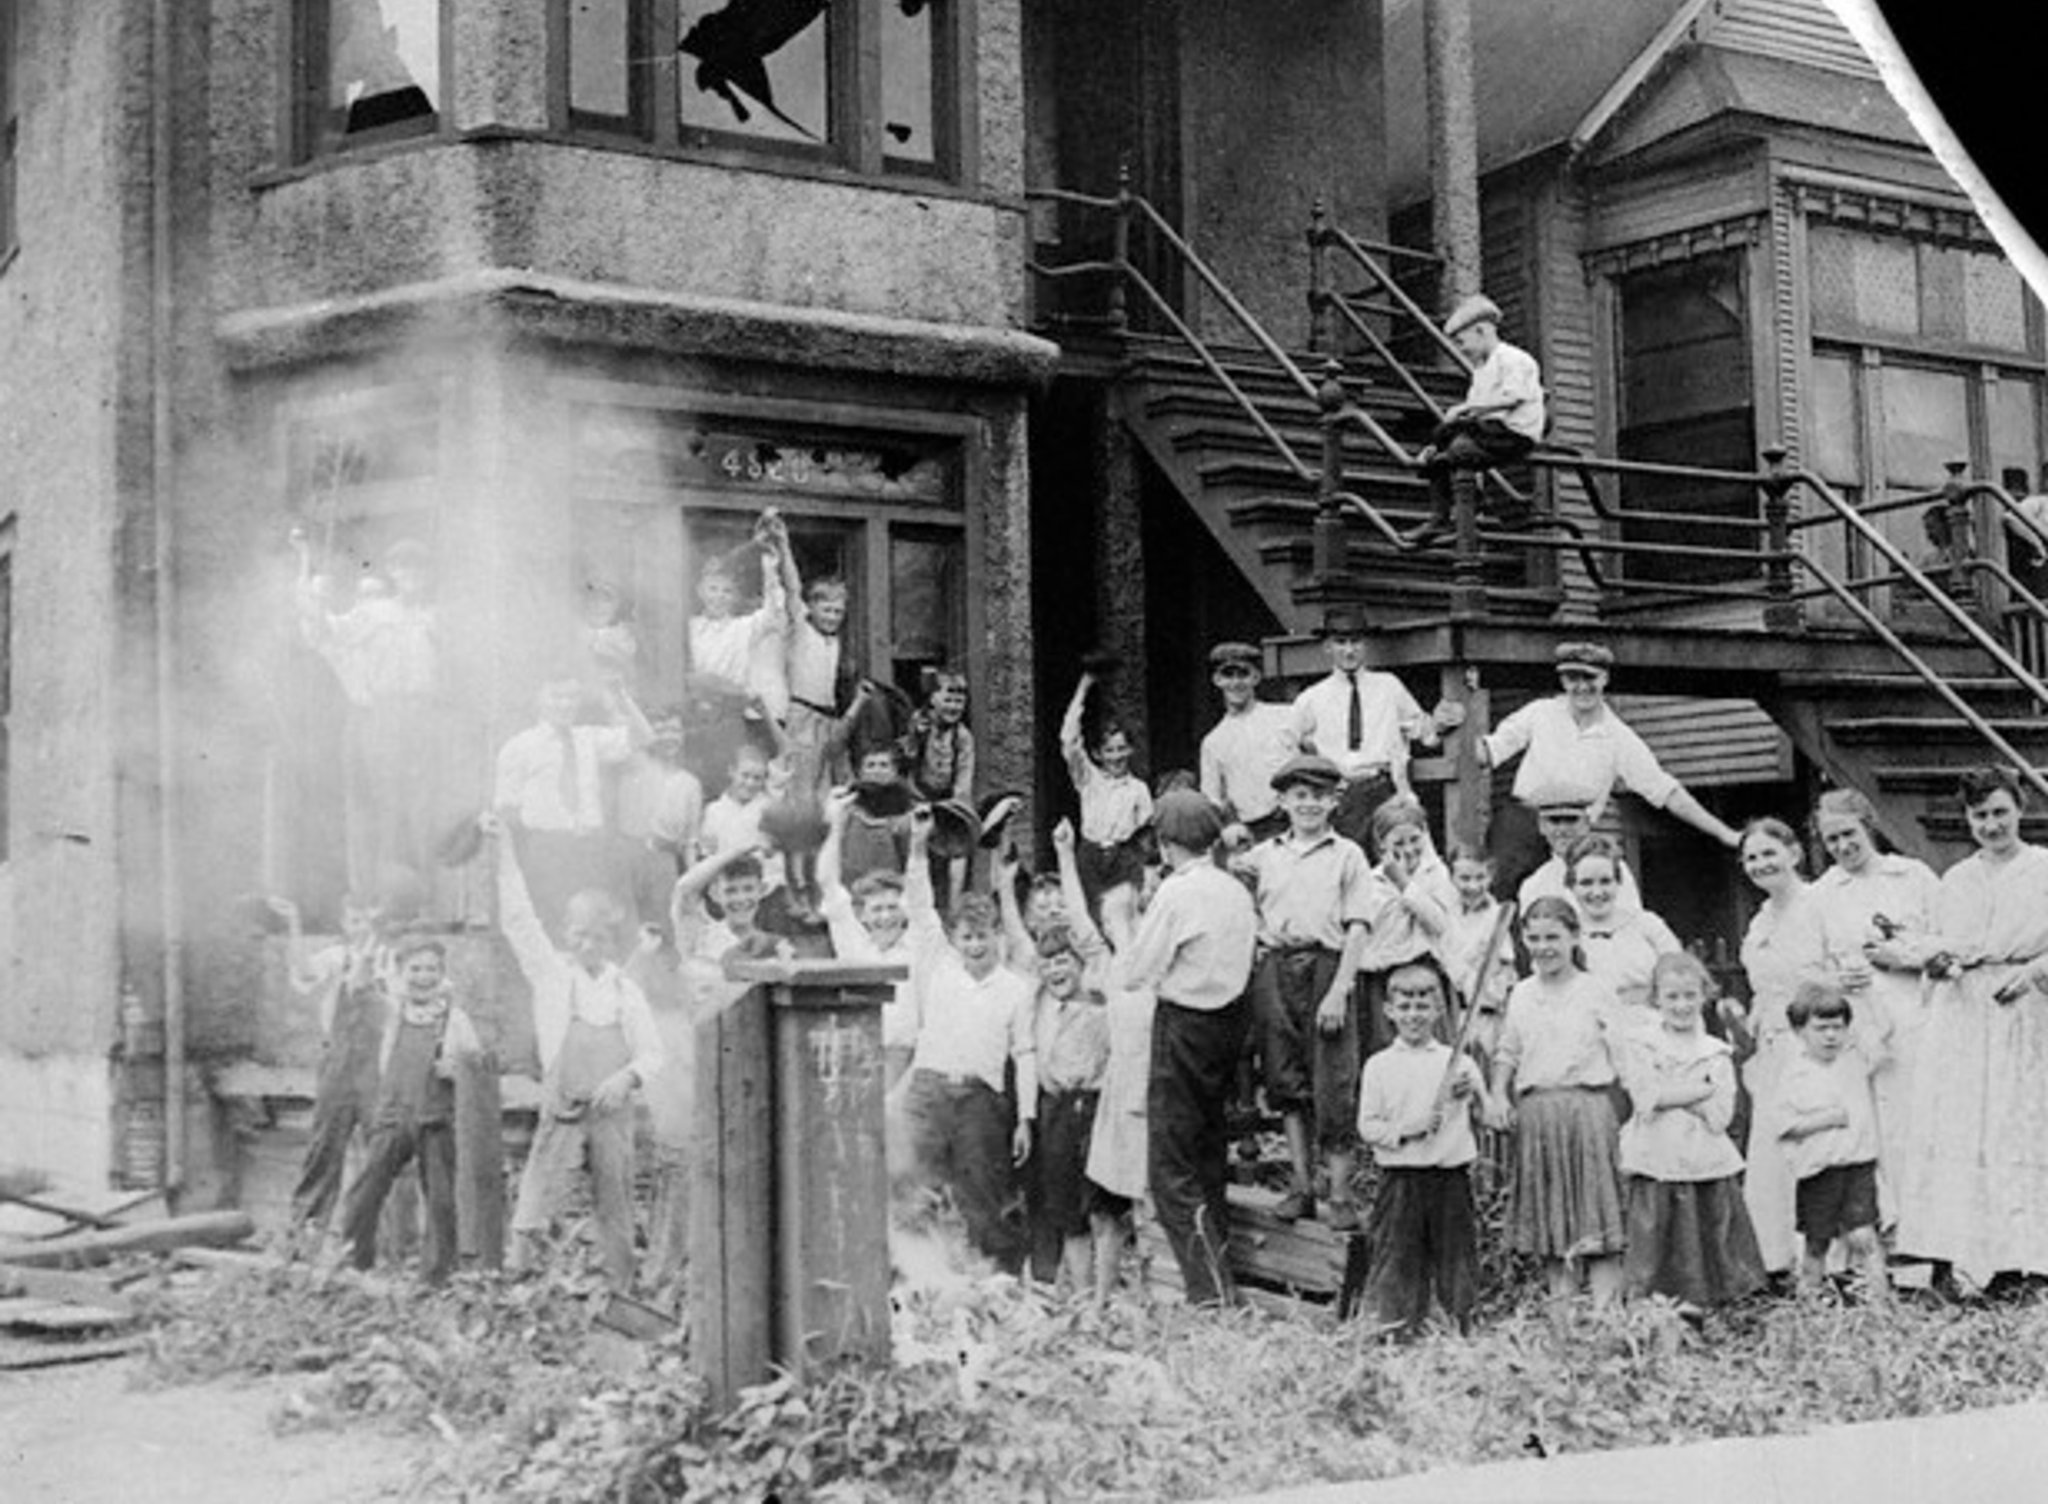 kids-cheering-a-burning-house.jpg